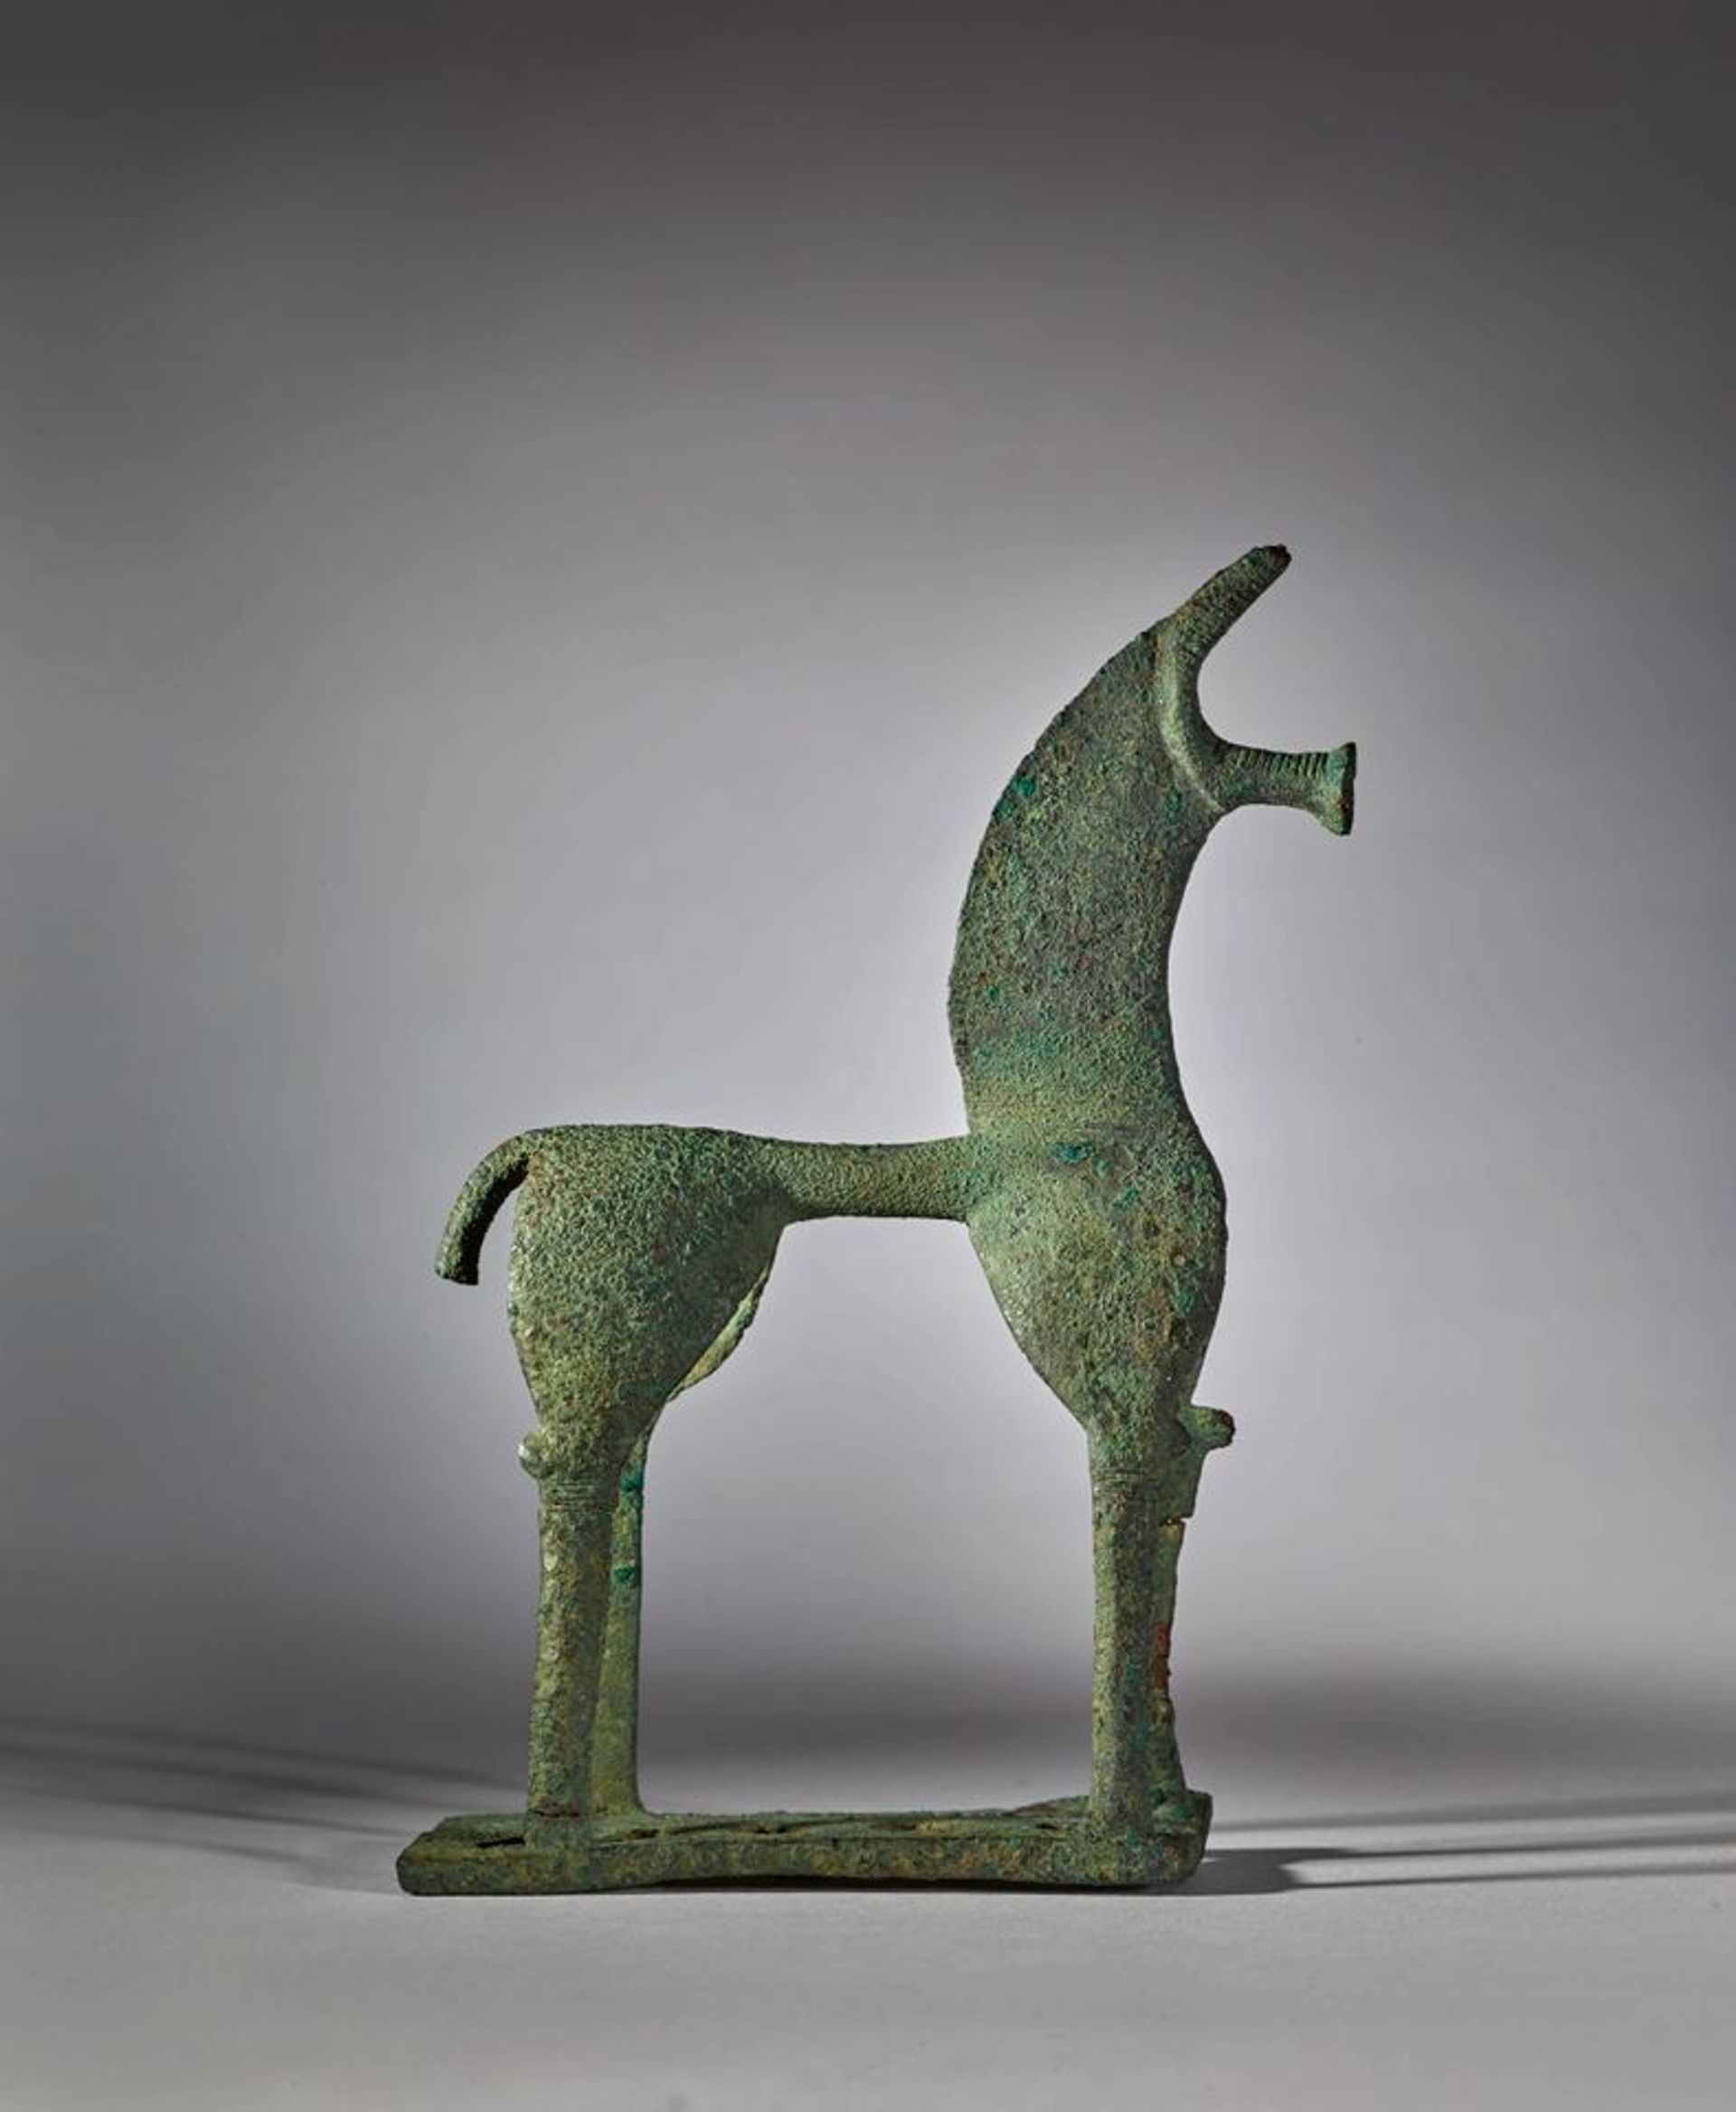 The ancient bronze horse was withdrawn from a 2018 sale after Greece demanded its return. © Sotheby's